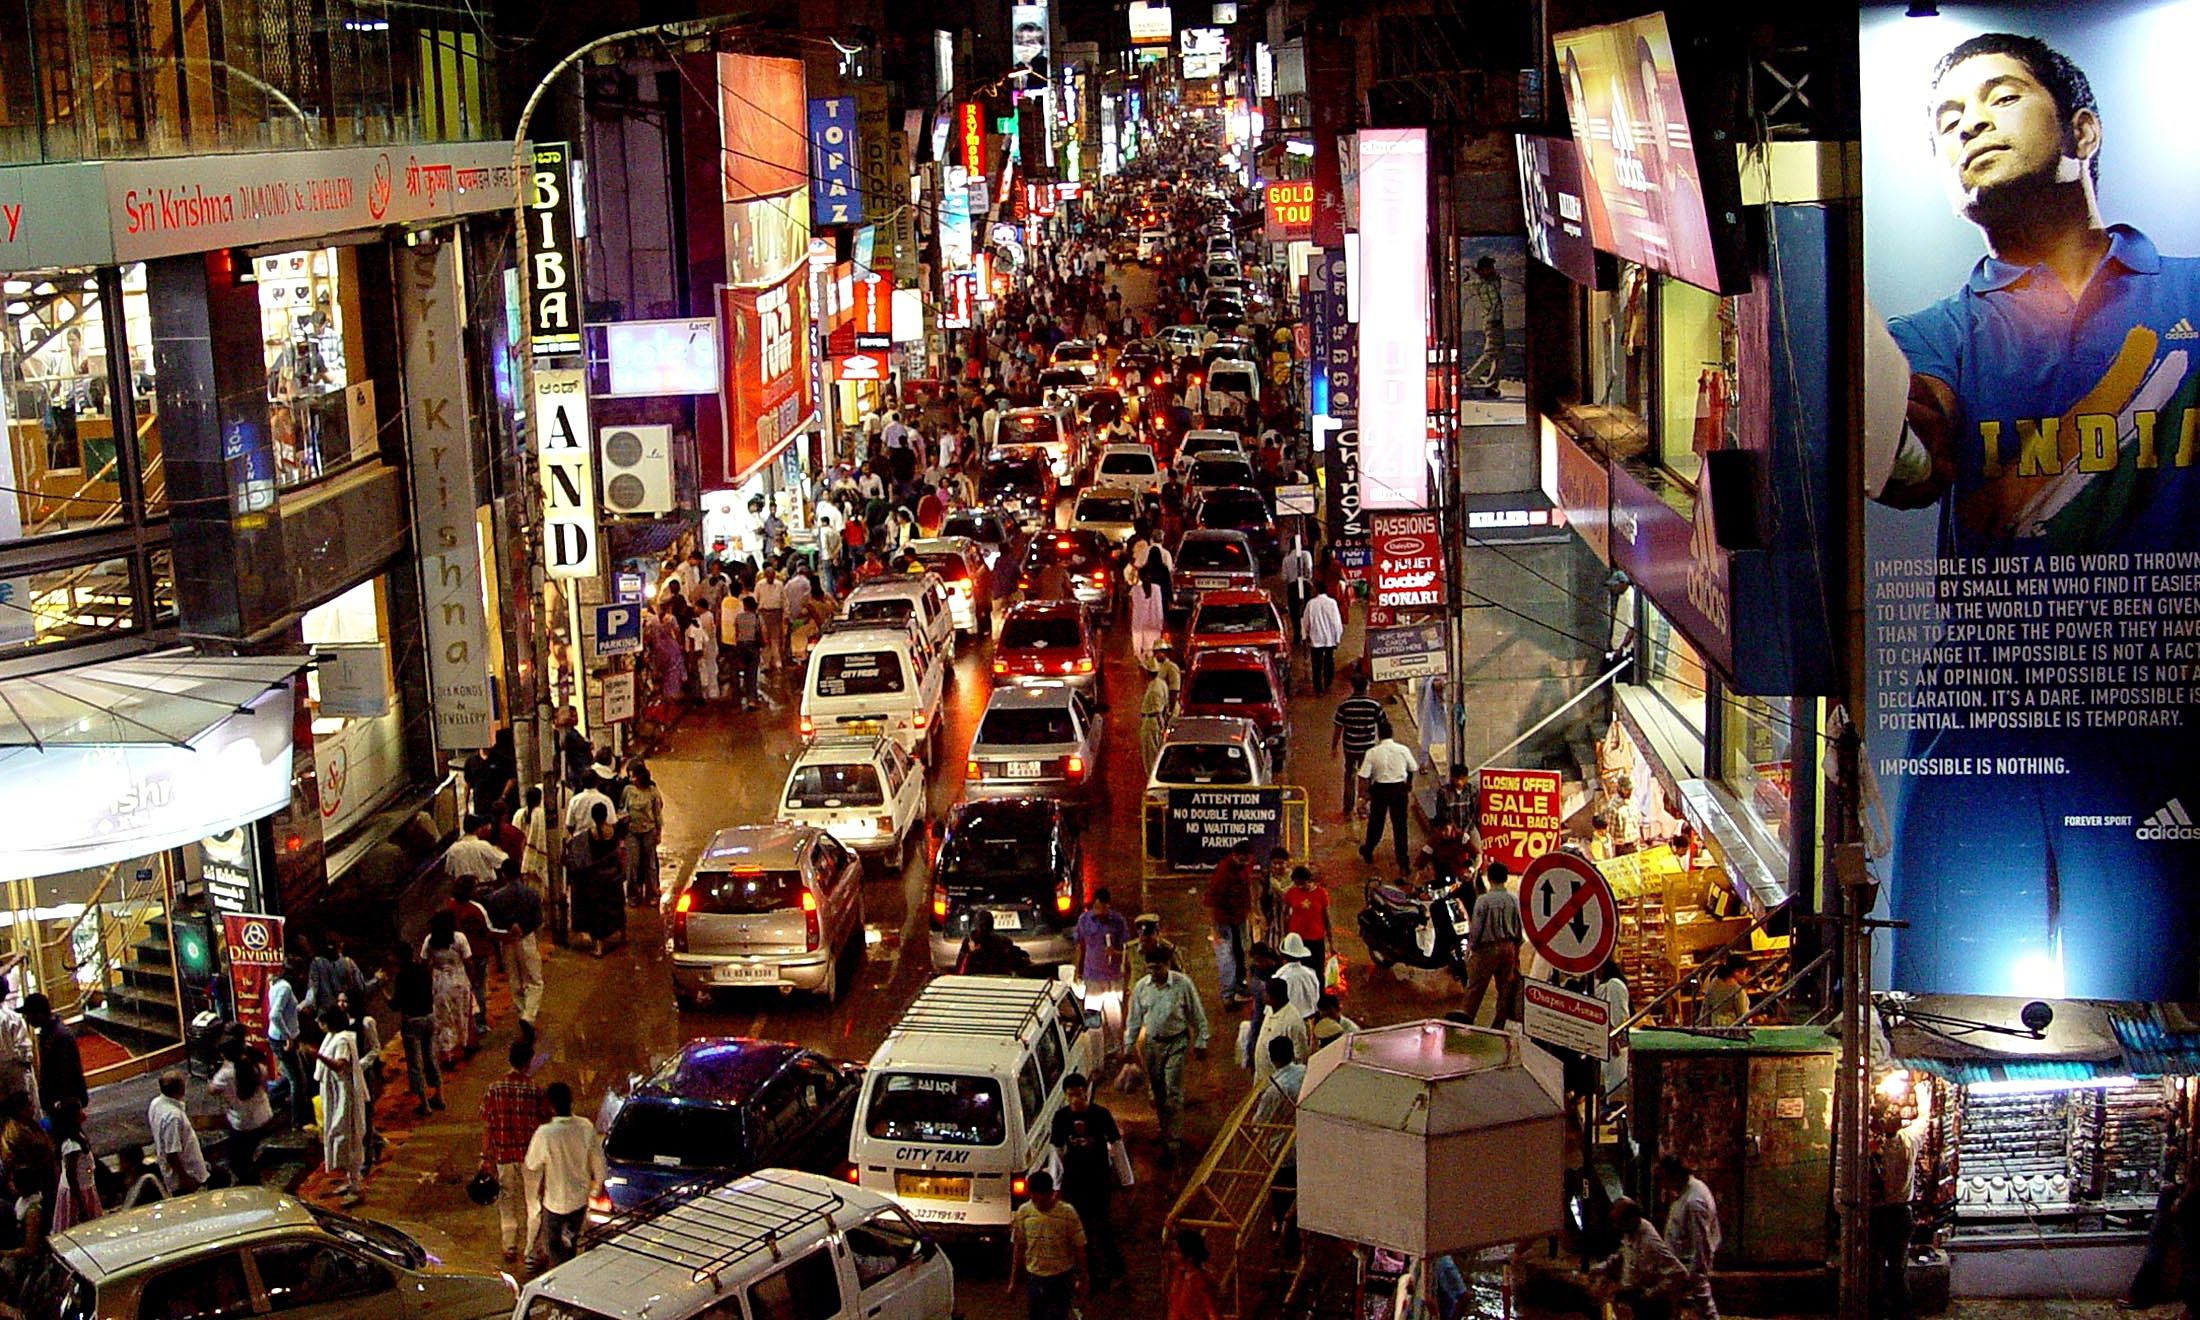 Could Chennai India's model green city? (With